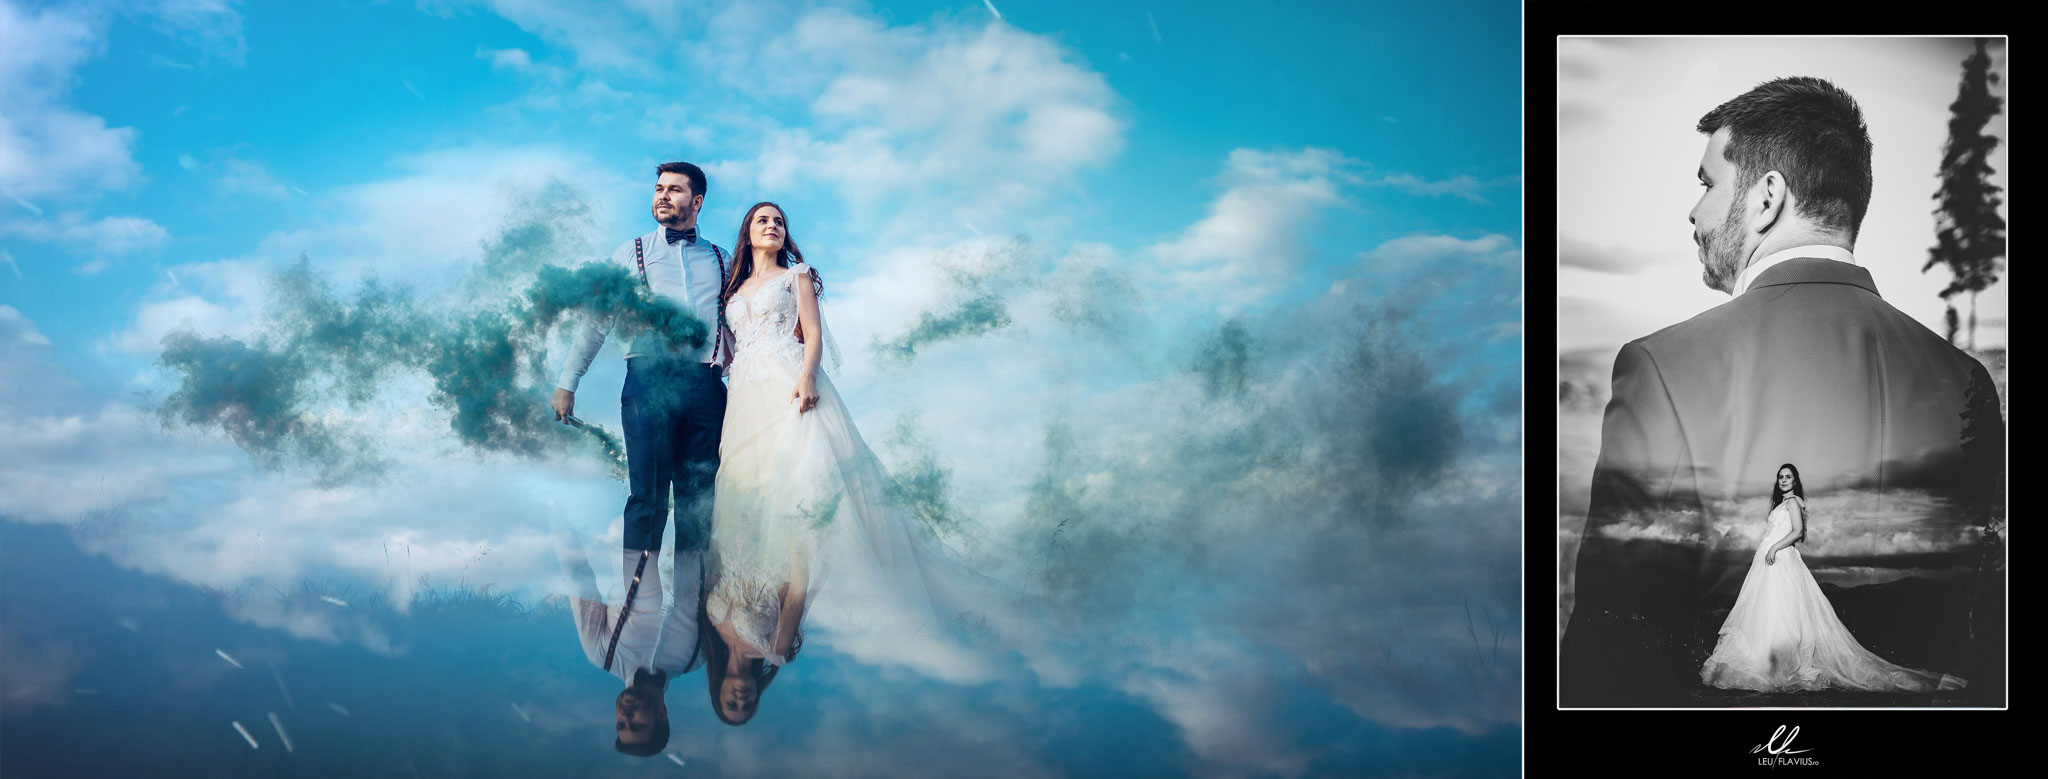 Colaj 06 - Trash the Dress - Cosmina si Ionut